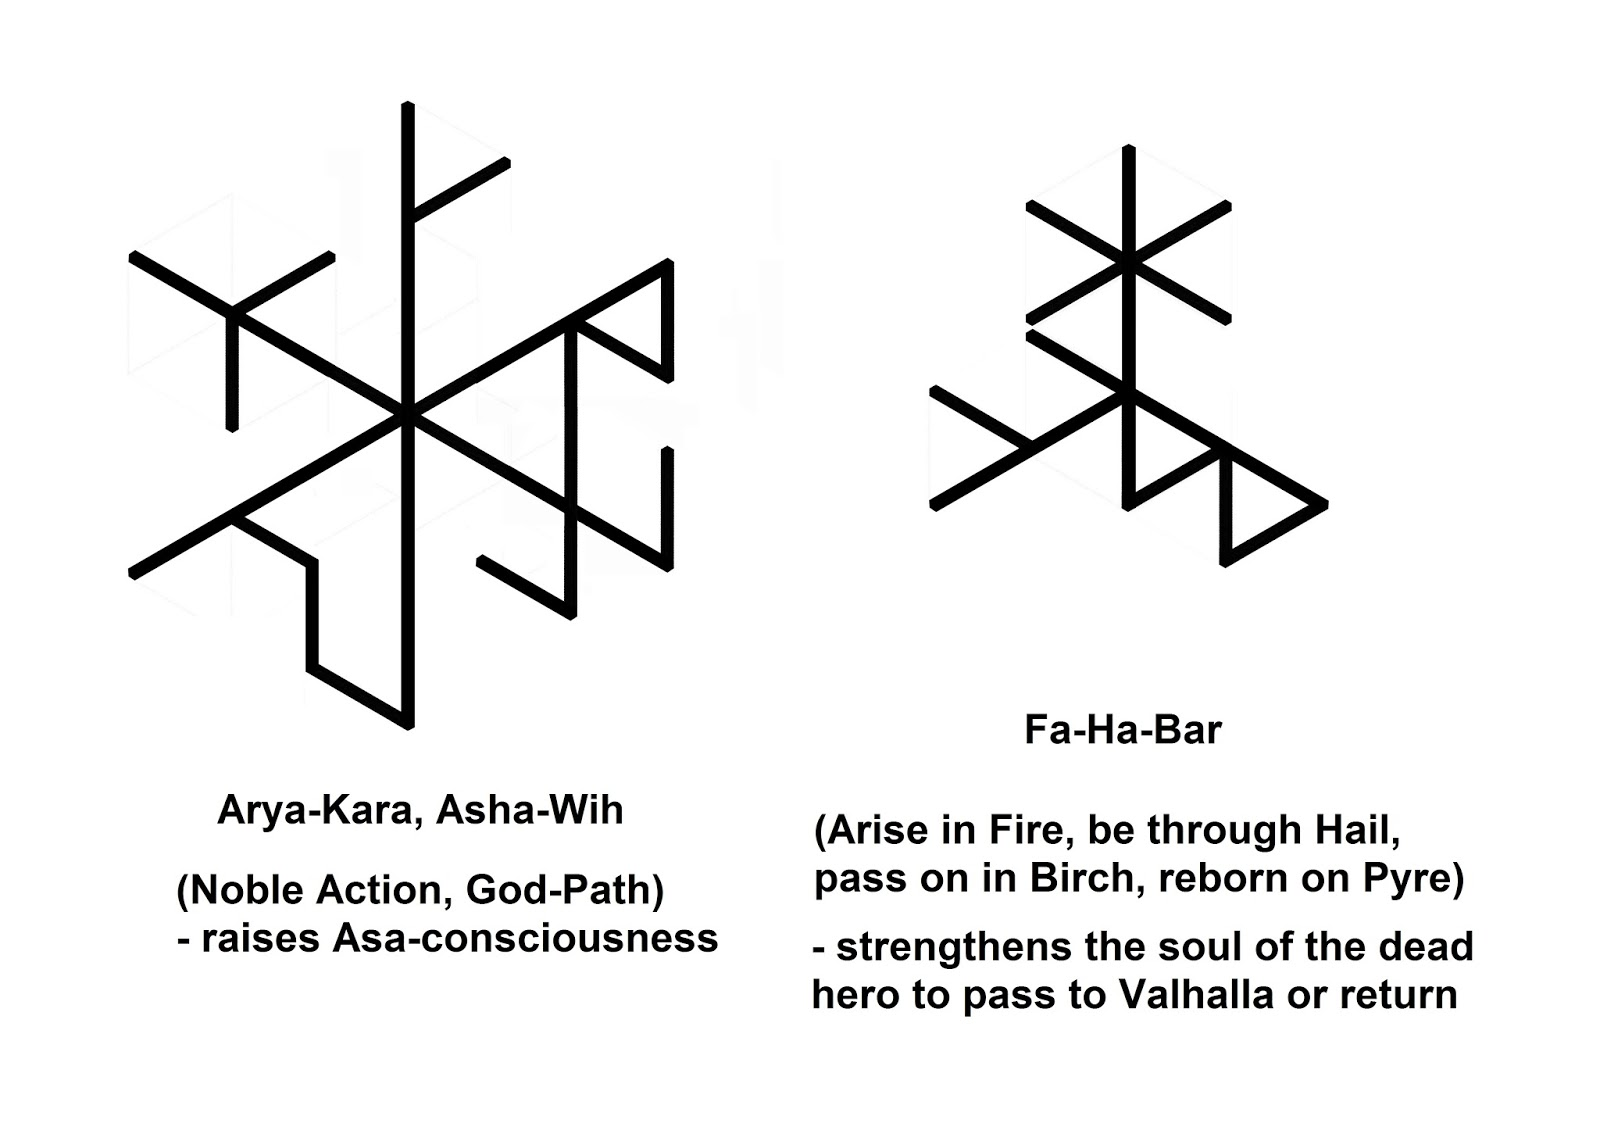 Real rune magick the esoteric praxis of bind runes two other armanen bind runes the one on the right fa ha bar was used not only in funerals but also rites of initiation into adulthood arising and biocorpaavc Image collections